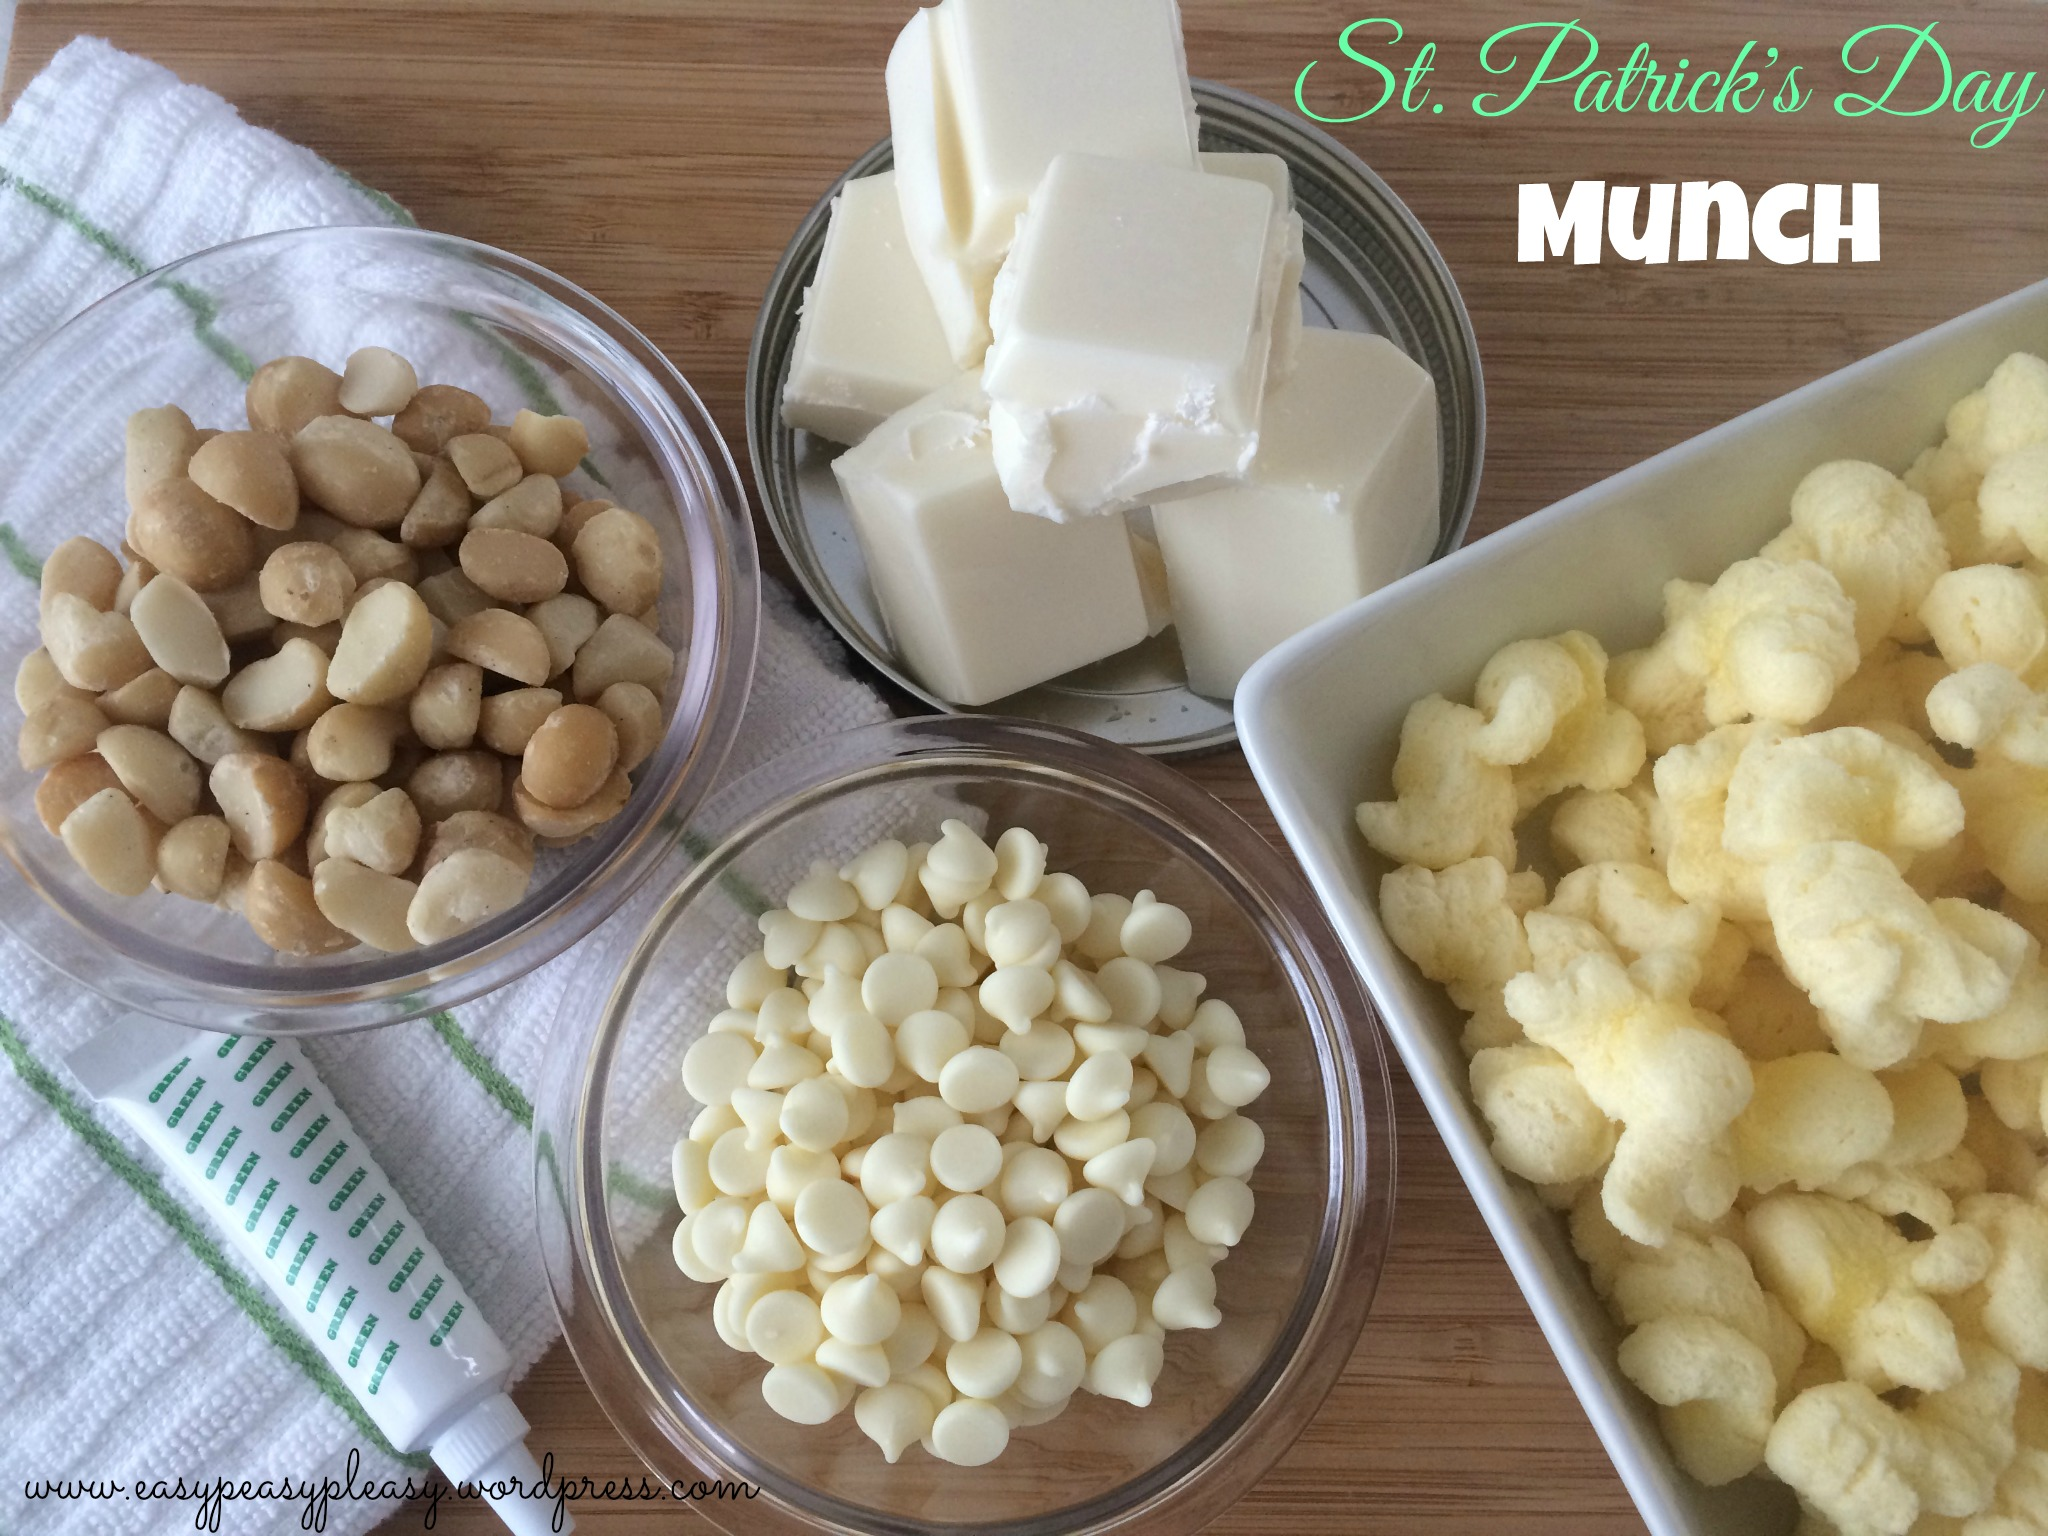 Come check out how to use these simple ingredients to make St. Patrick's Day Munch at www.easypeasypleasy.wordpress.com